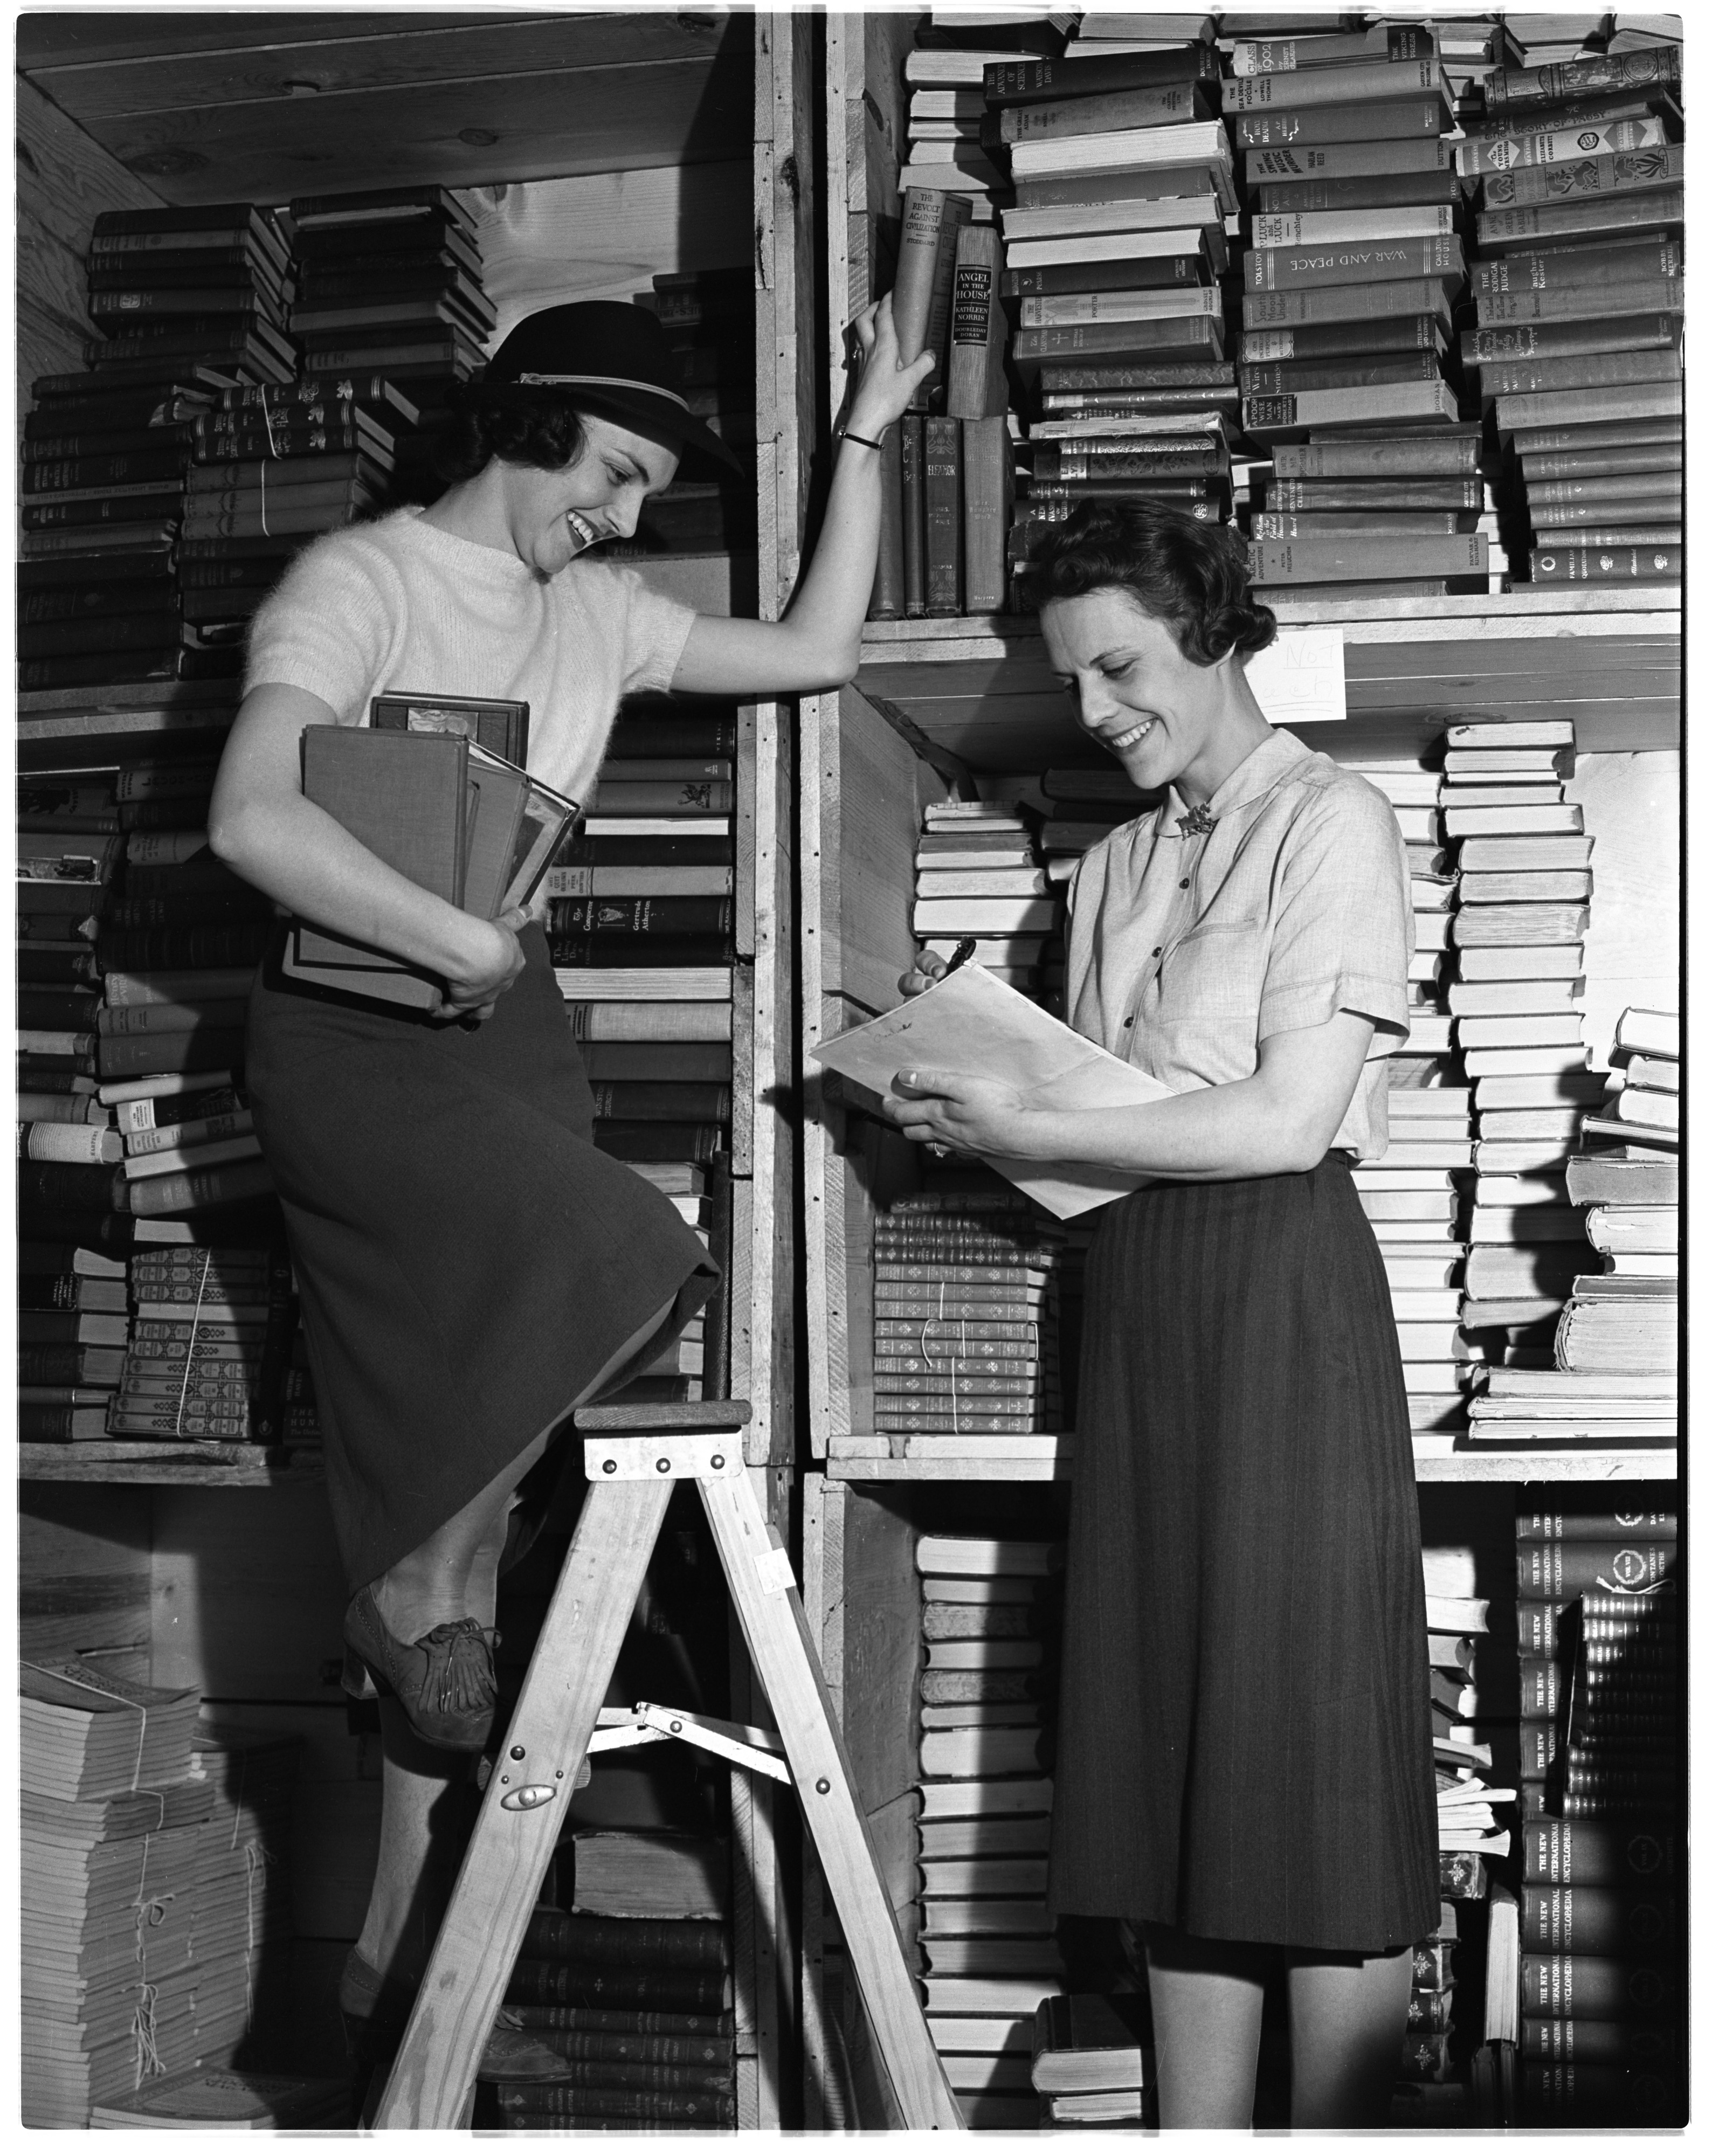 University of Michigan Alumnae Book Sale, May 1938 image